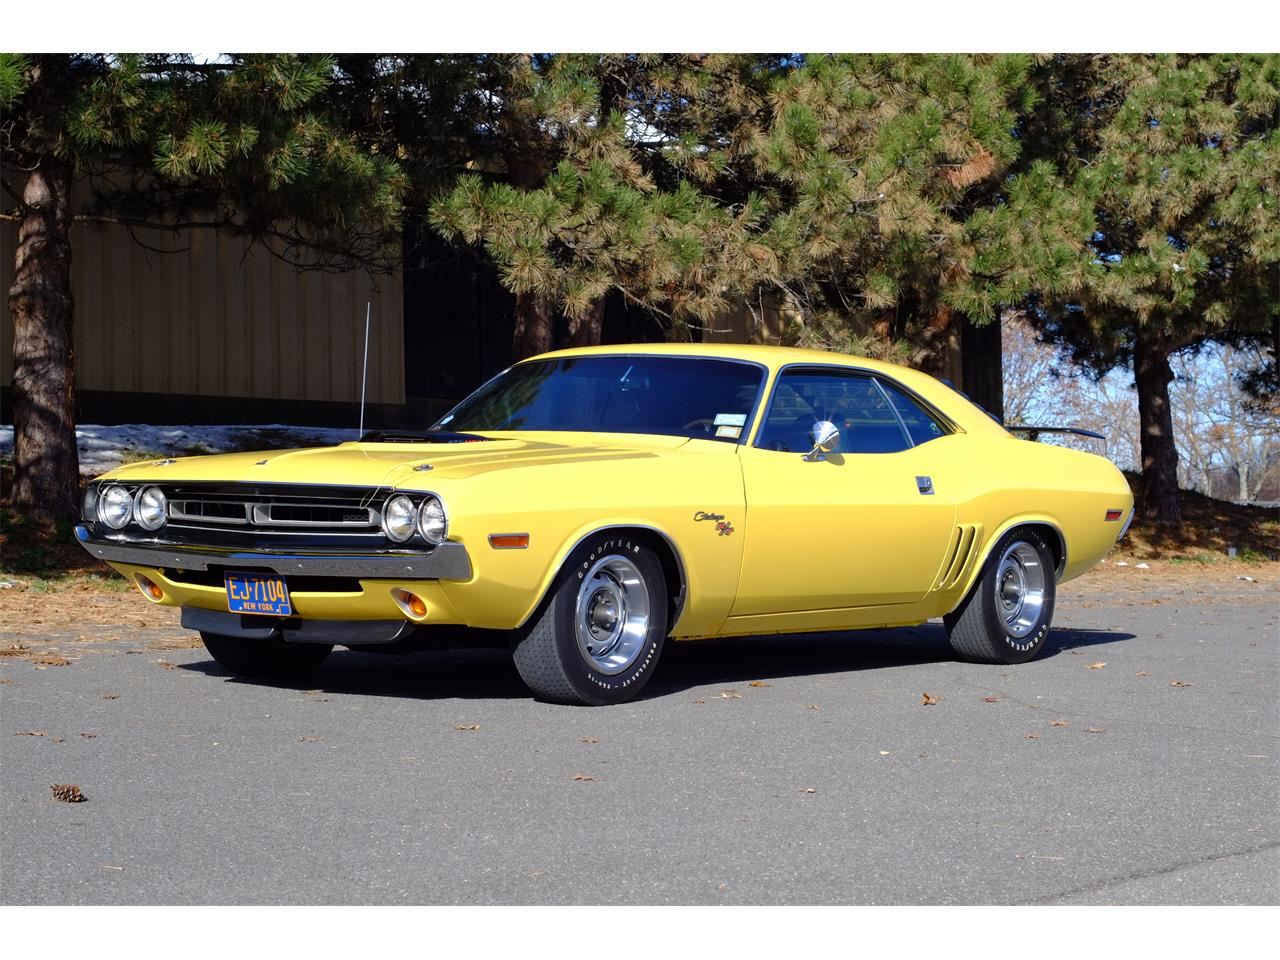 Large Picture of 1971 Dodge Challenger R/T 426 Hemi - $325,000.00 - JY6E